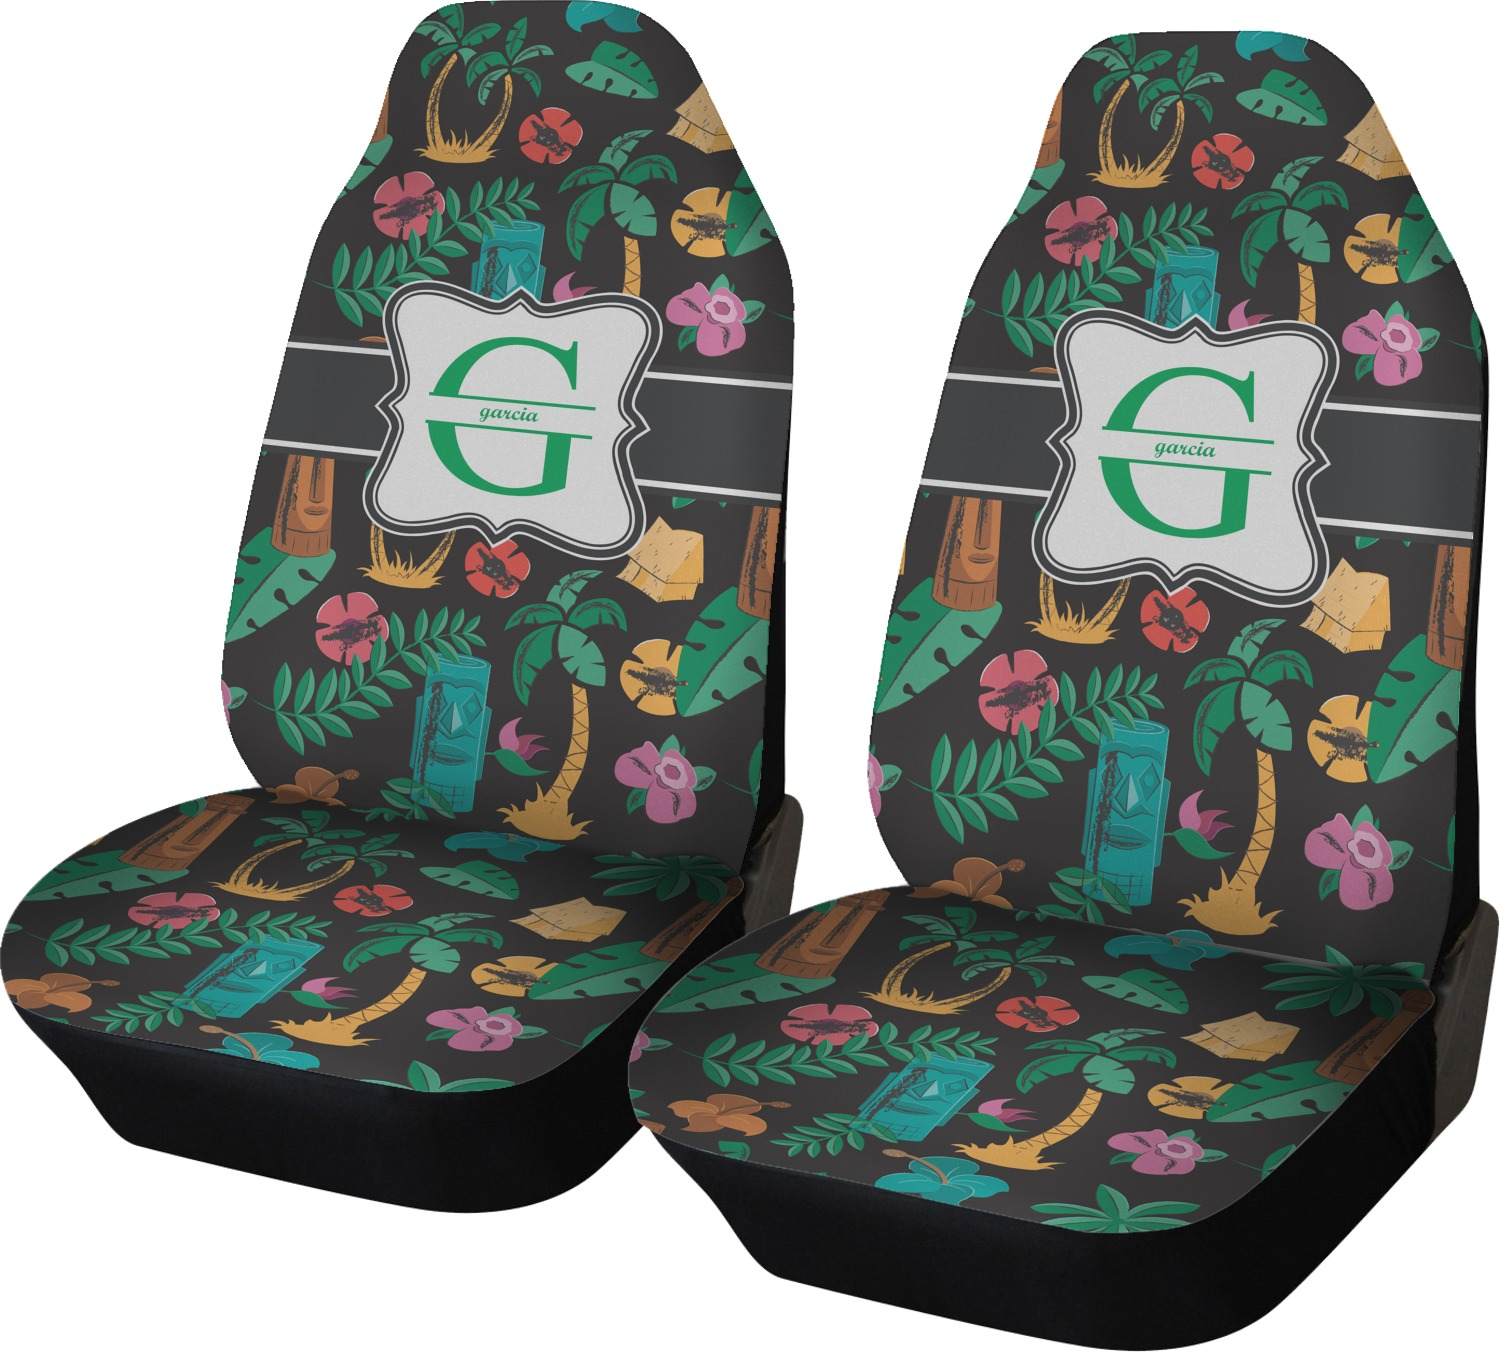 Hawaiian Car Seat Covers >> Hawaiian Masks Car Seat Covers Set Of Two Personalized